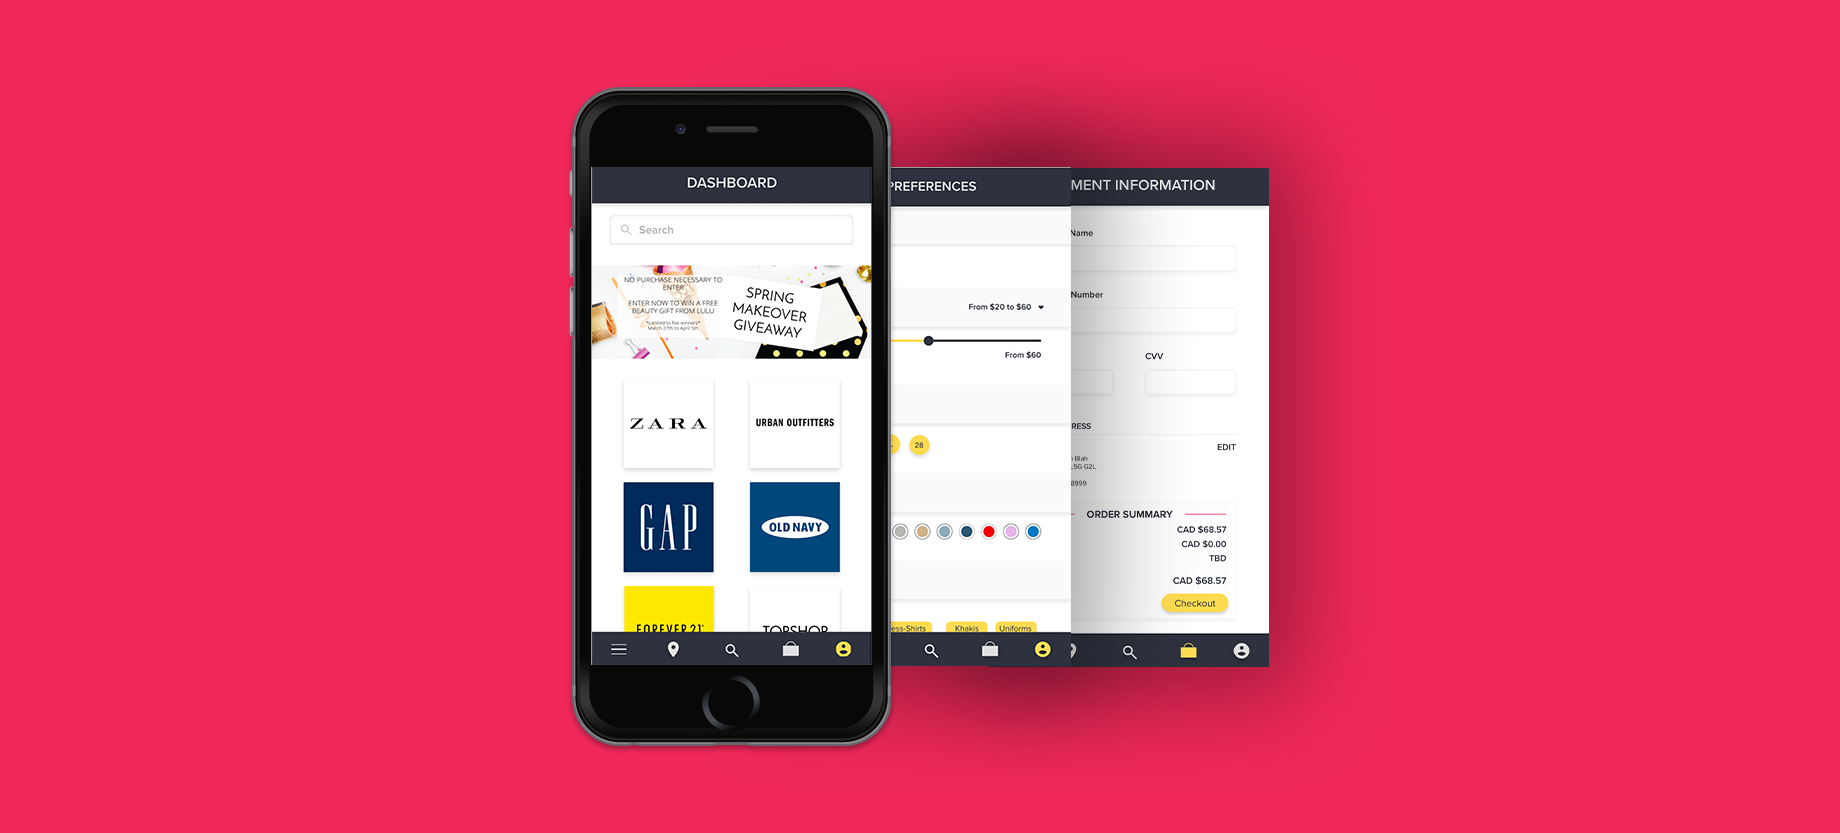 Phone with three screens for Shop Easy app. First Screen is dashboard with different store, second screen is preferences, and third screen is payment page.